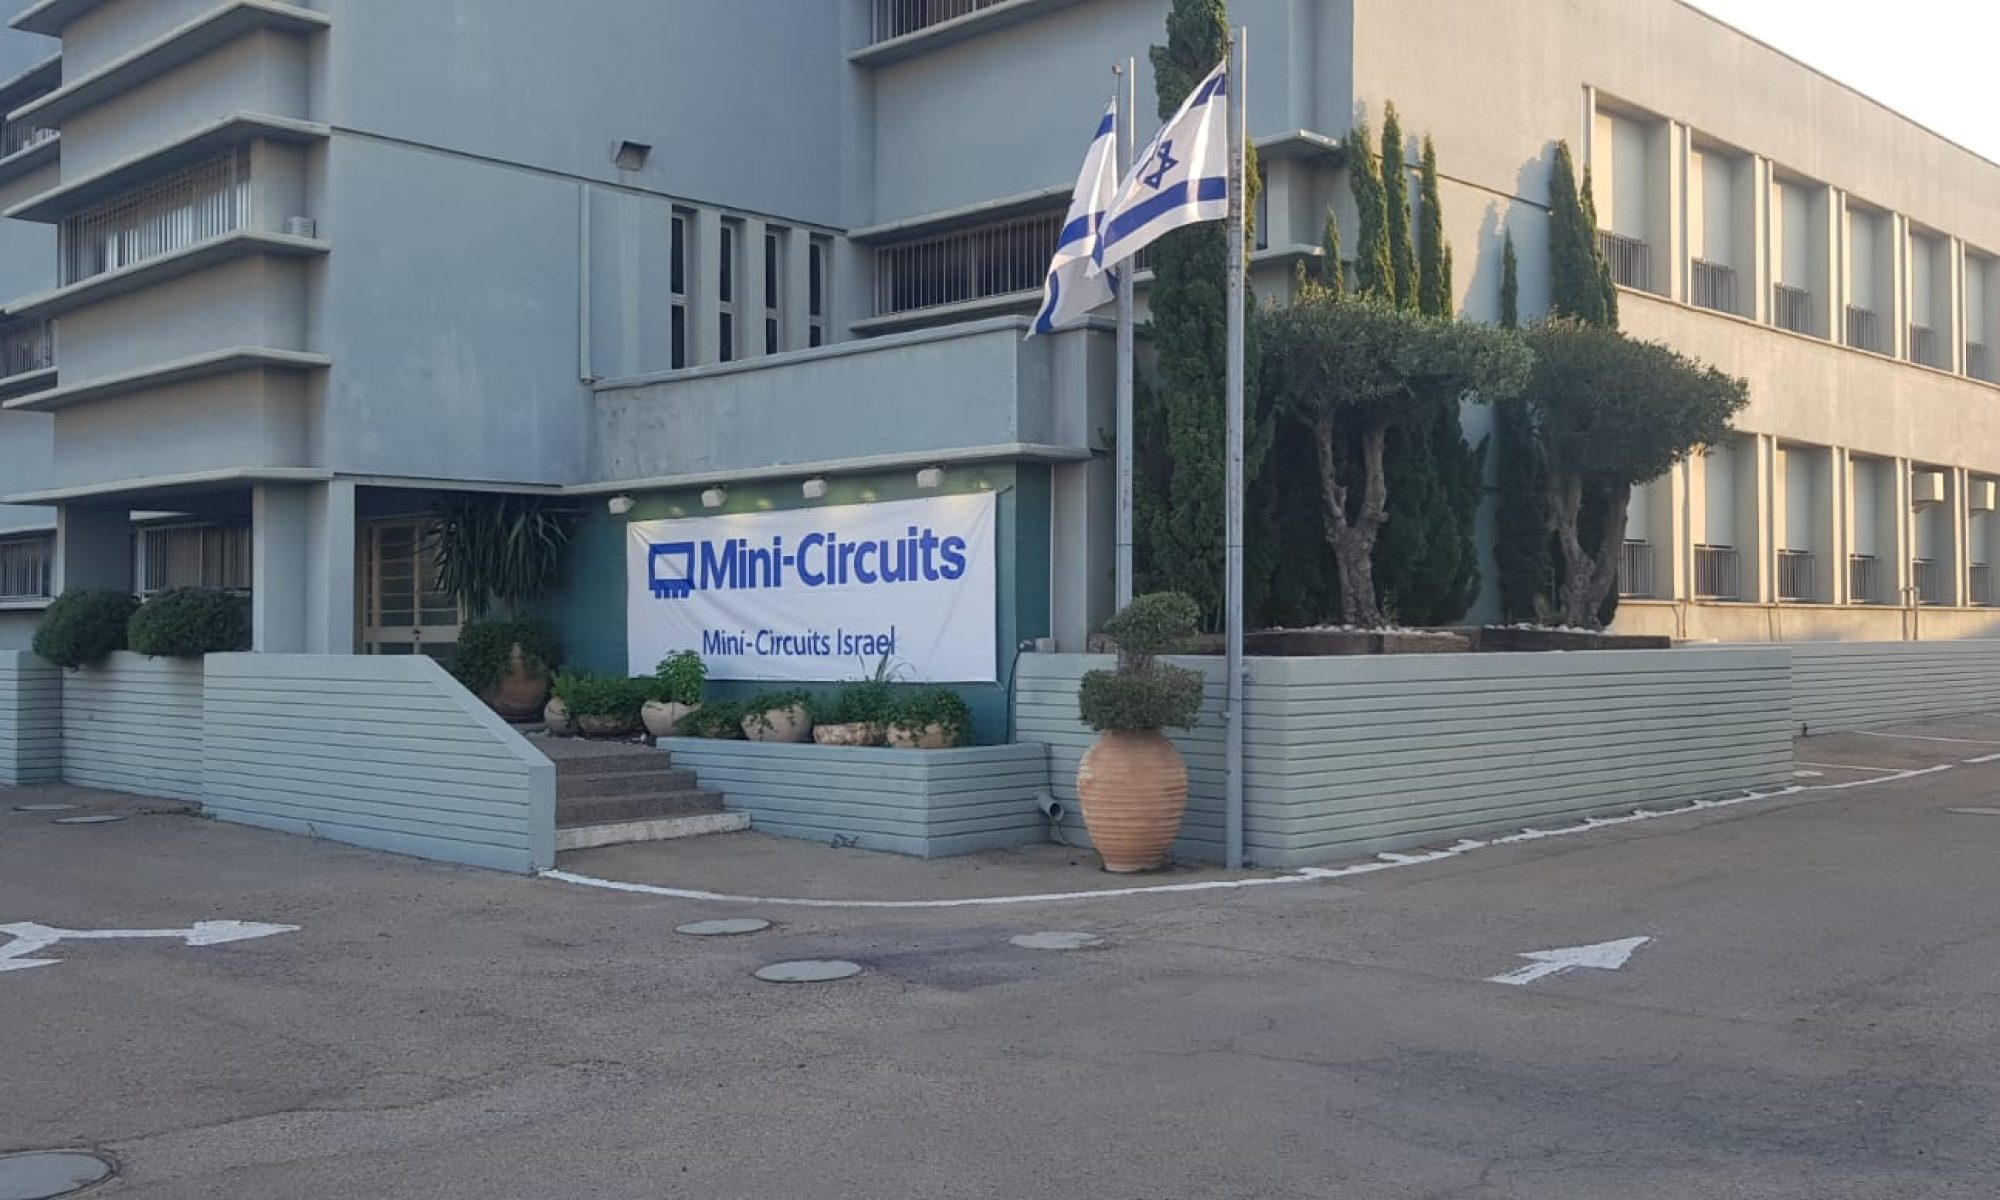 Mini-Circuits Israel